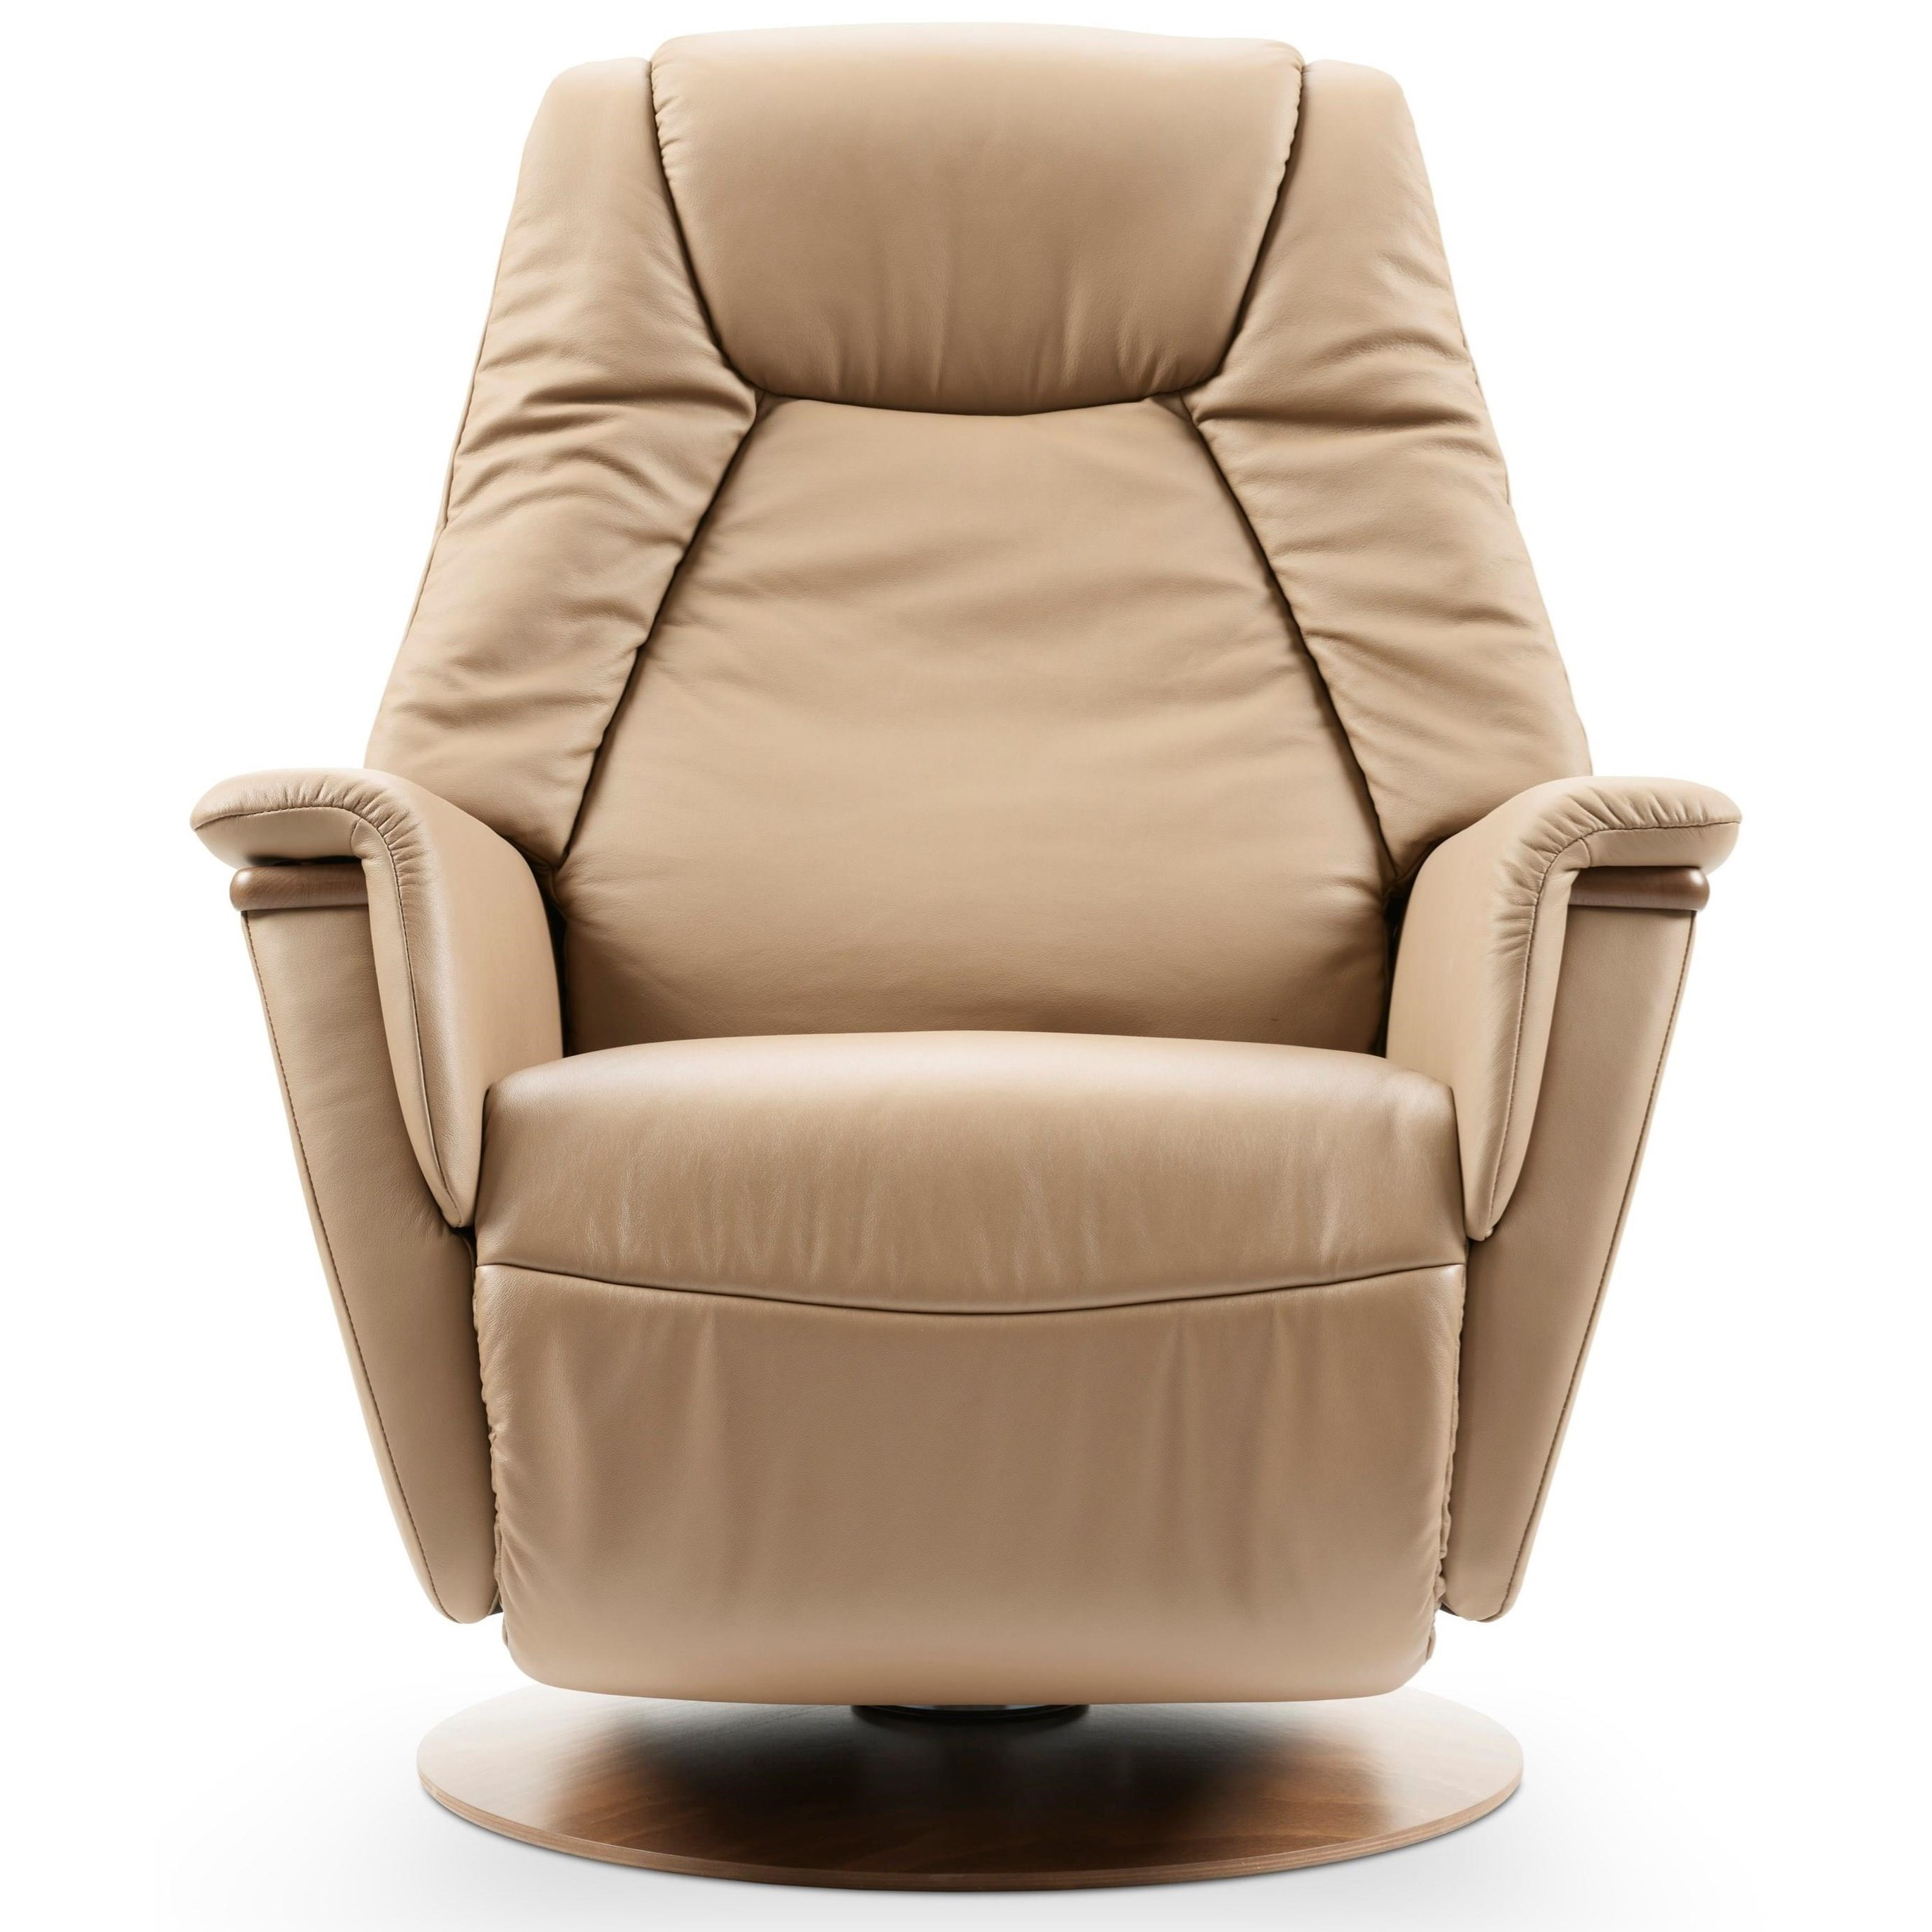 Max Large Power Recliner by Stressless at Jordan's Home Furnishings